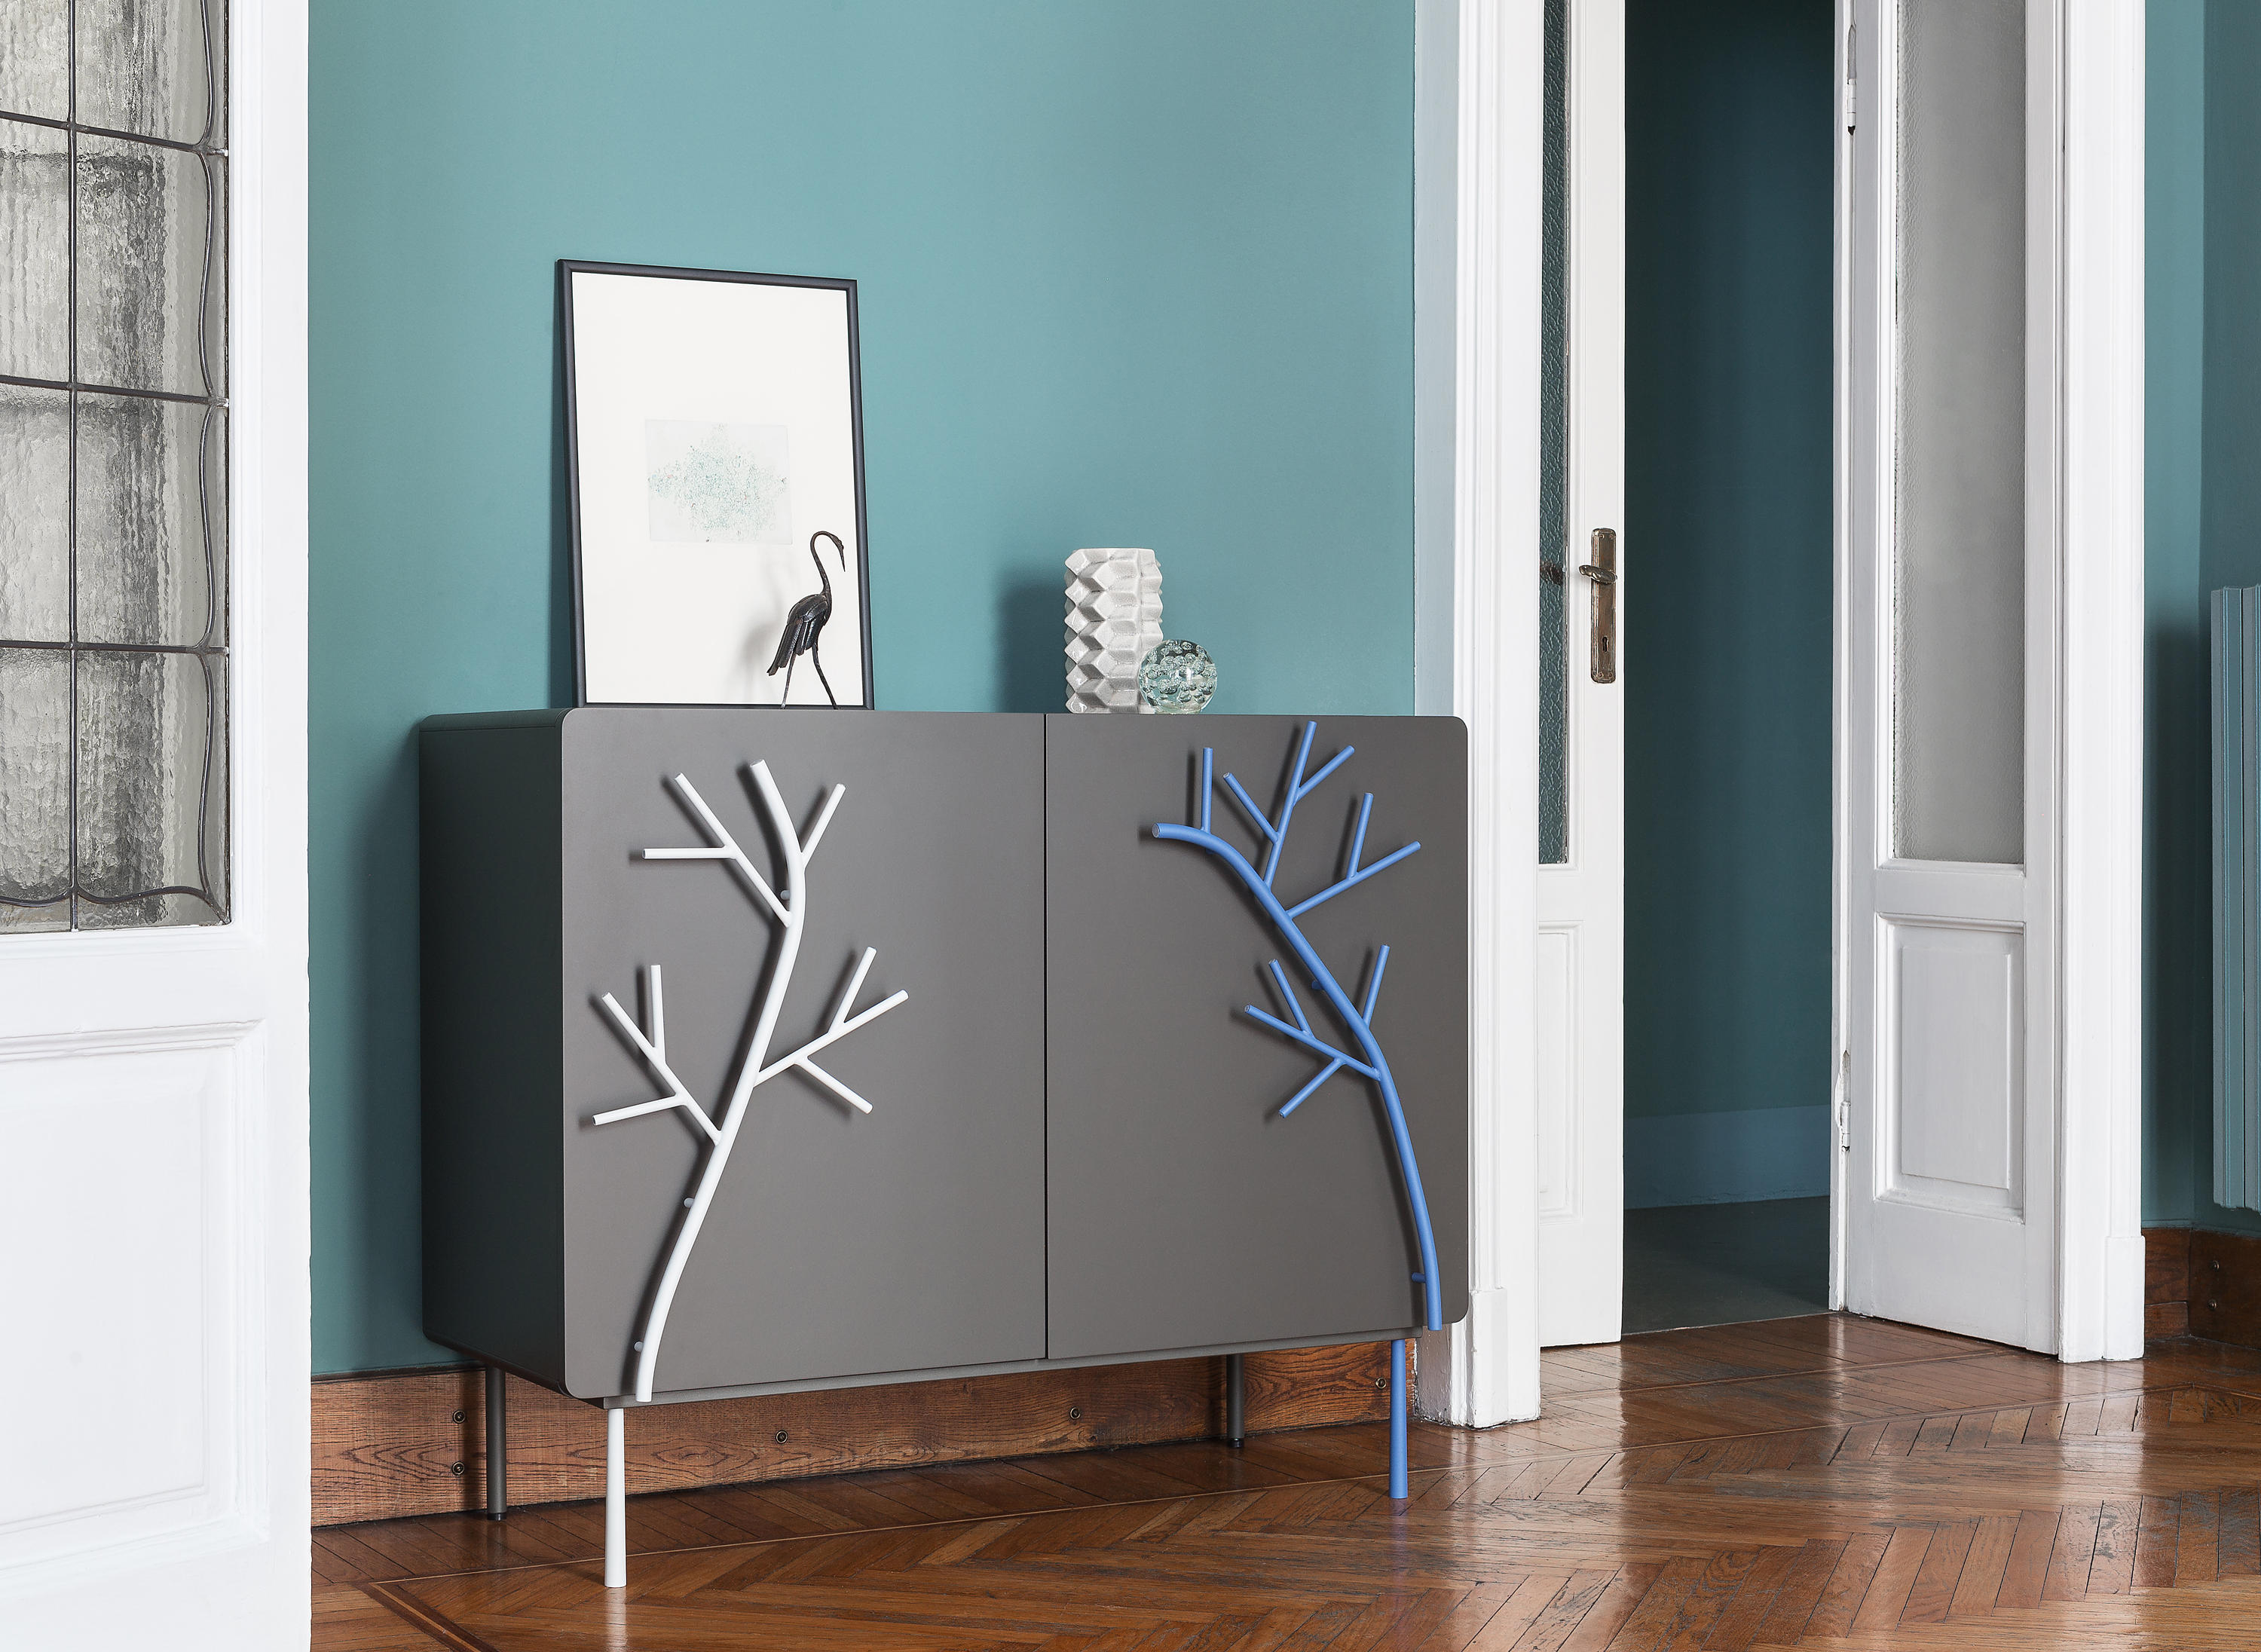 Rami Bedside Night Stands From Skitsch By Hub Design